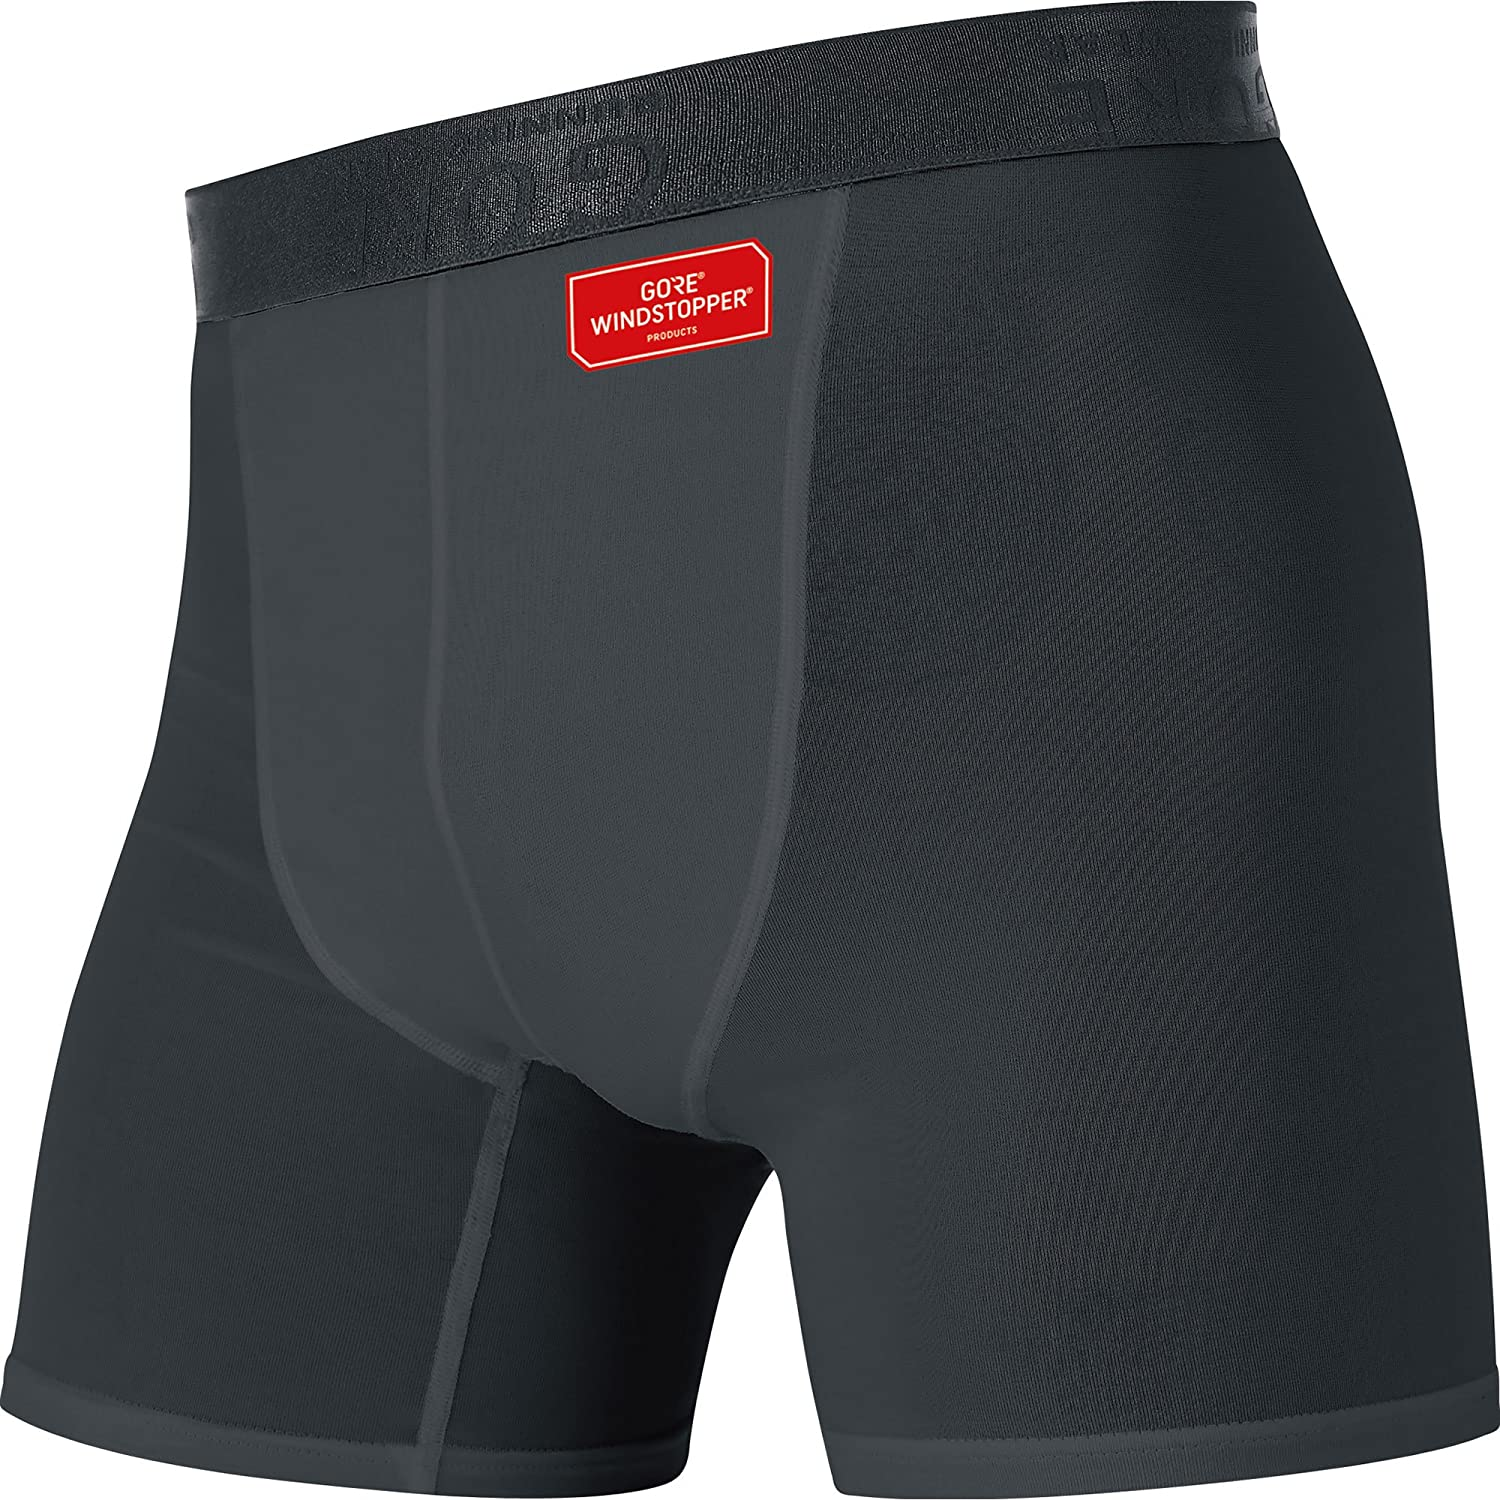 Gore Running Wear Men's Essential Base Layer Wind Stopper Boxer Shorts:  Amazon.co.uk: Sports & Outdoors